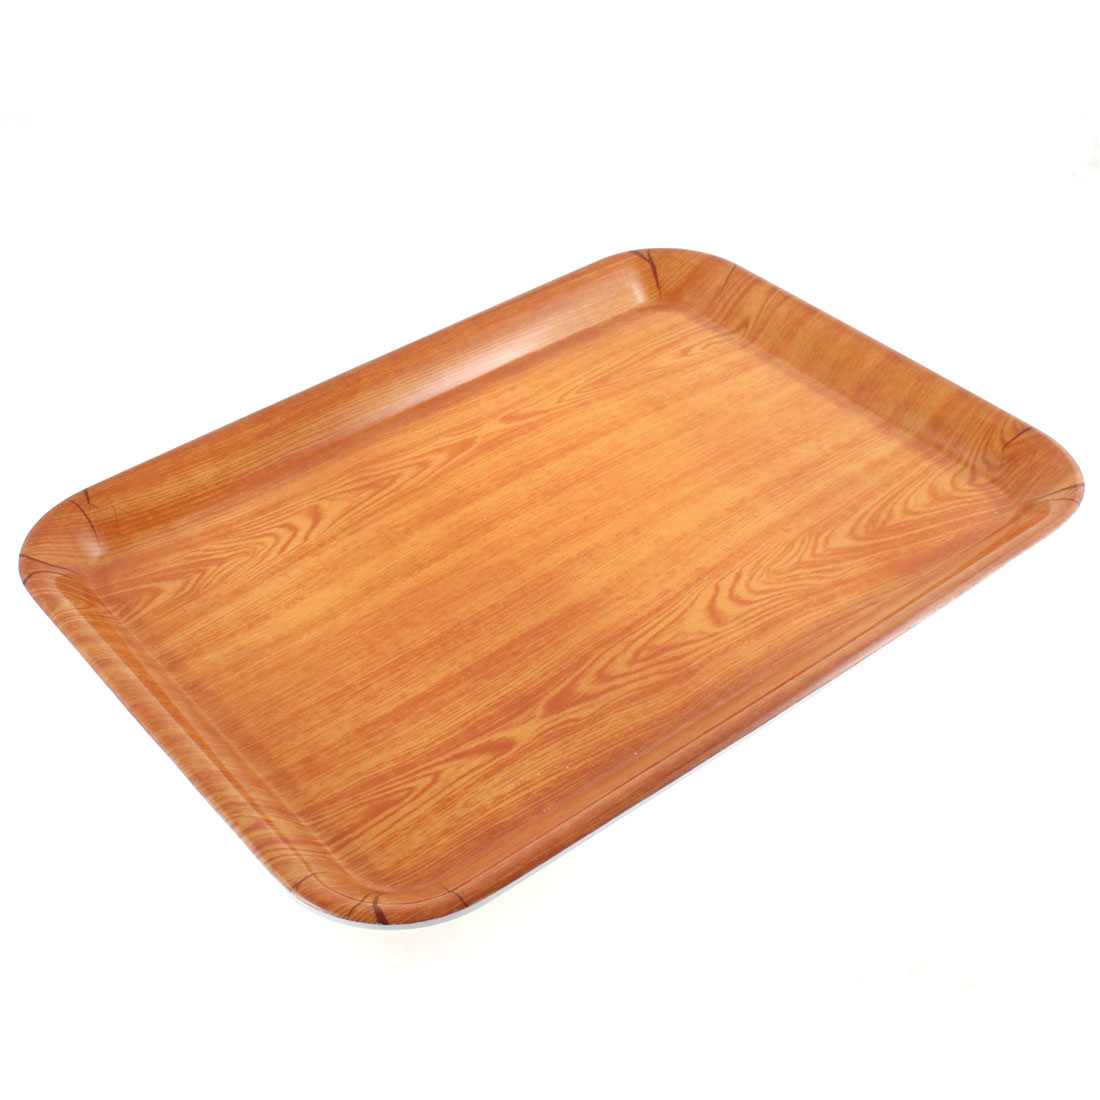 "Restaurant Plastic Rectangle Shaped Fast Food Dinner Serving Tray 17"" Length"